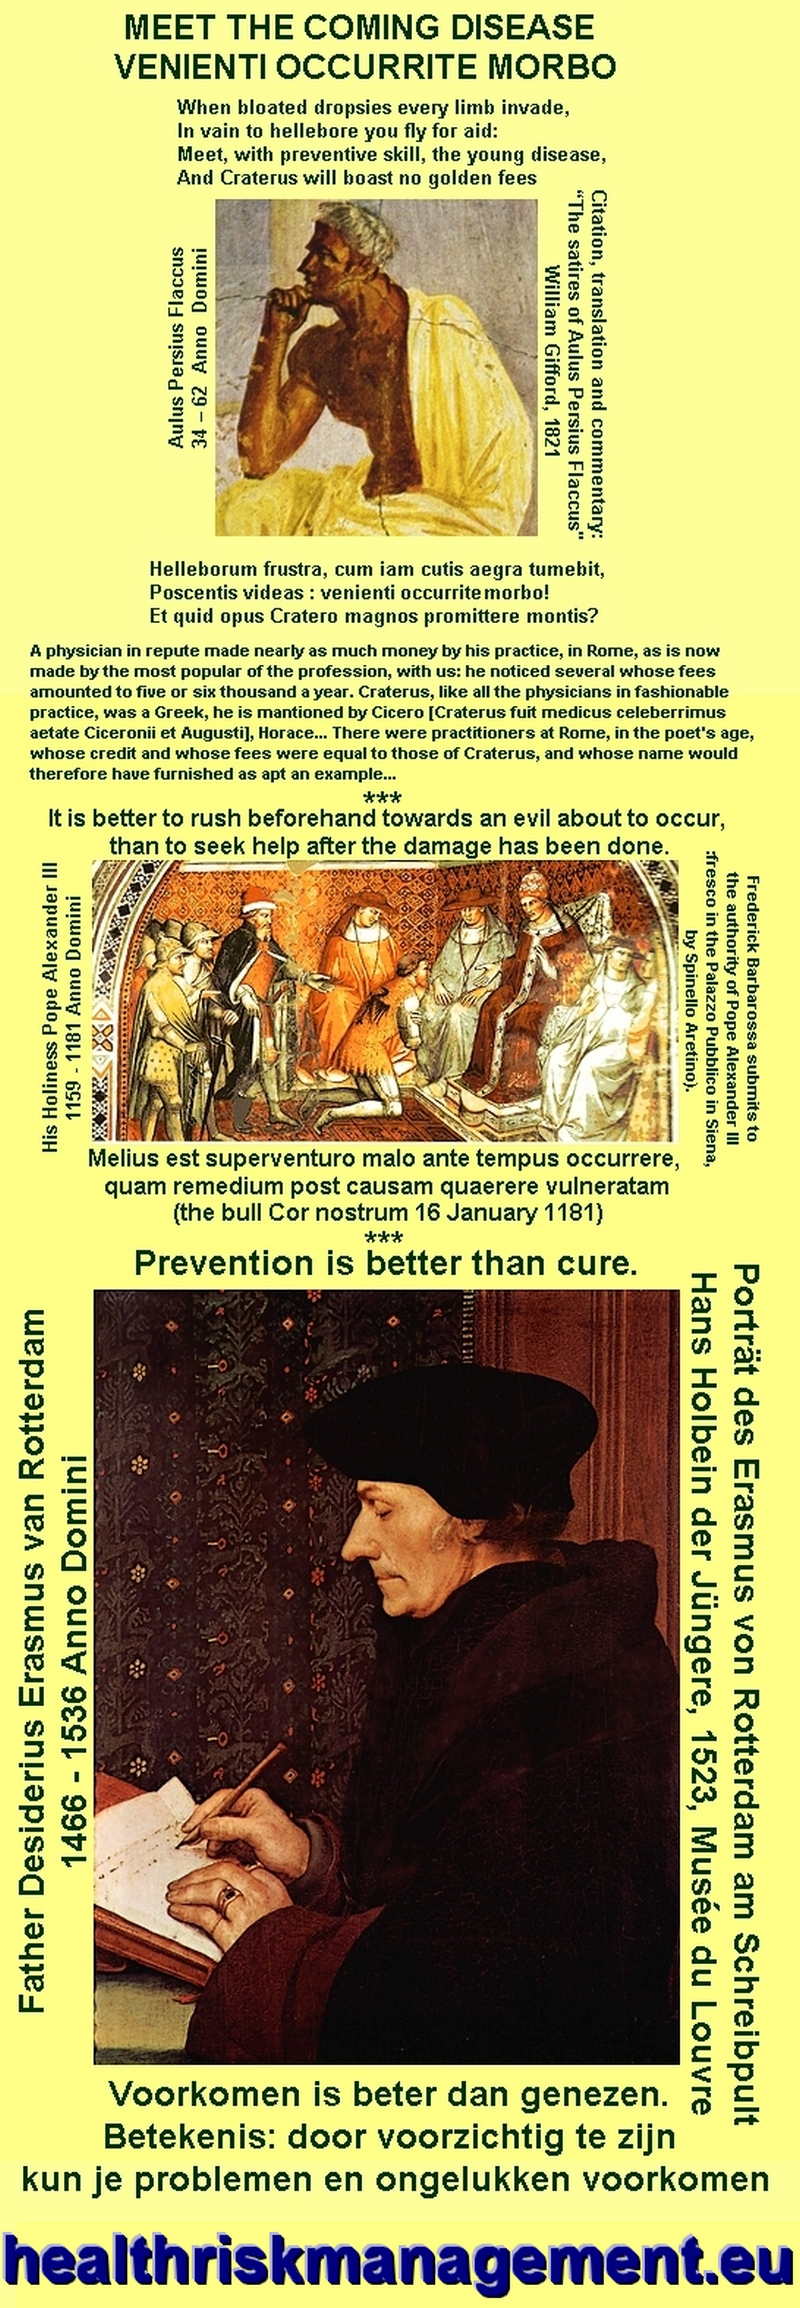 Prevention is better than cure: Persius, His Holiness Pope Alexander III, Father Desiderius Erasmus van Rotterdam